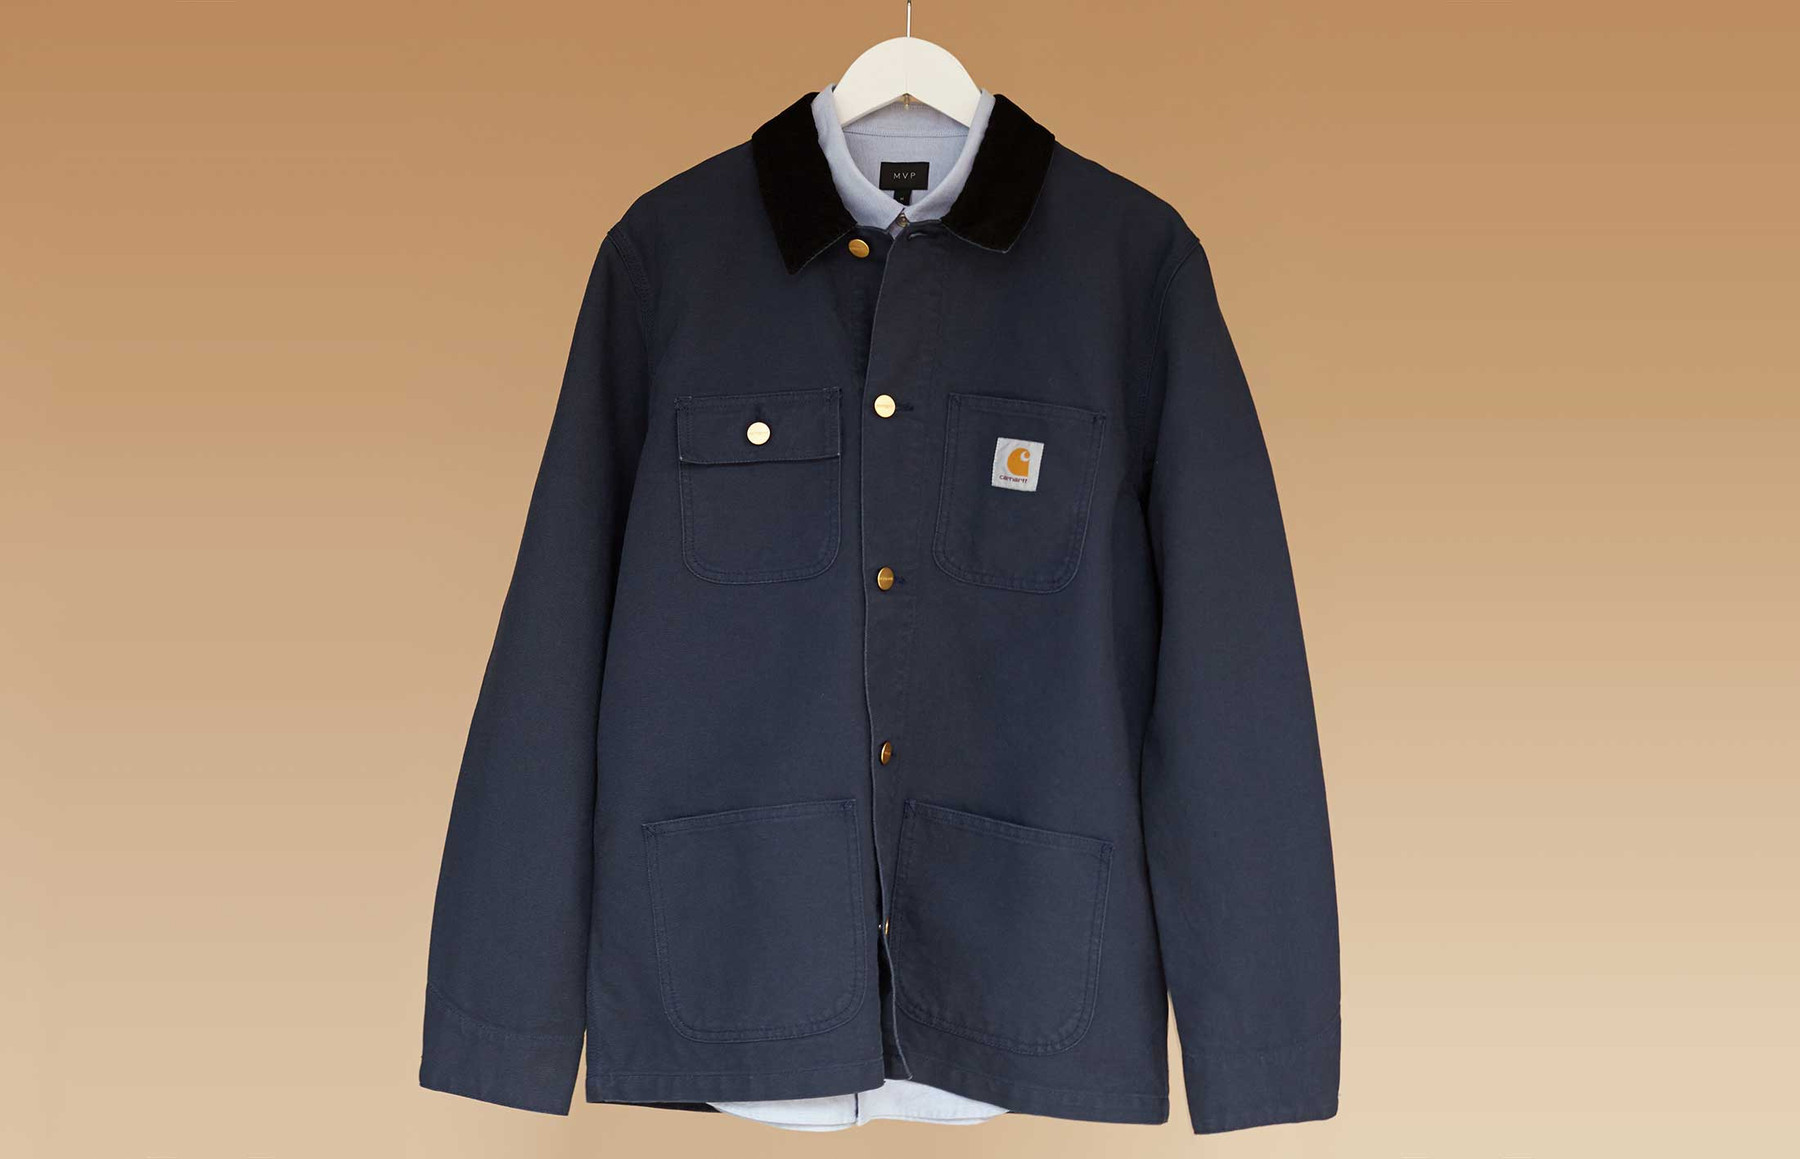 What is a utility jacket?